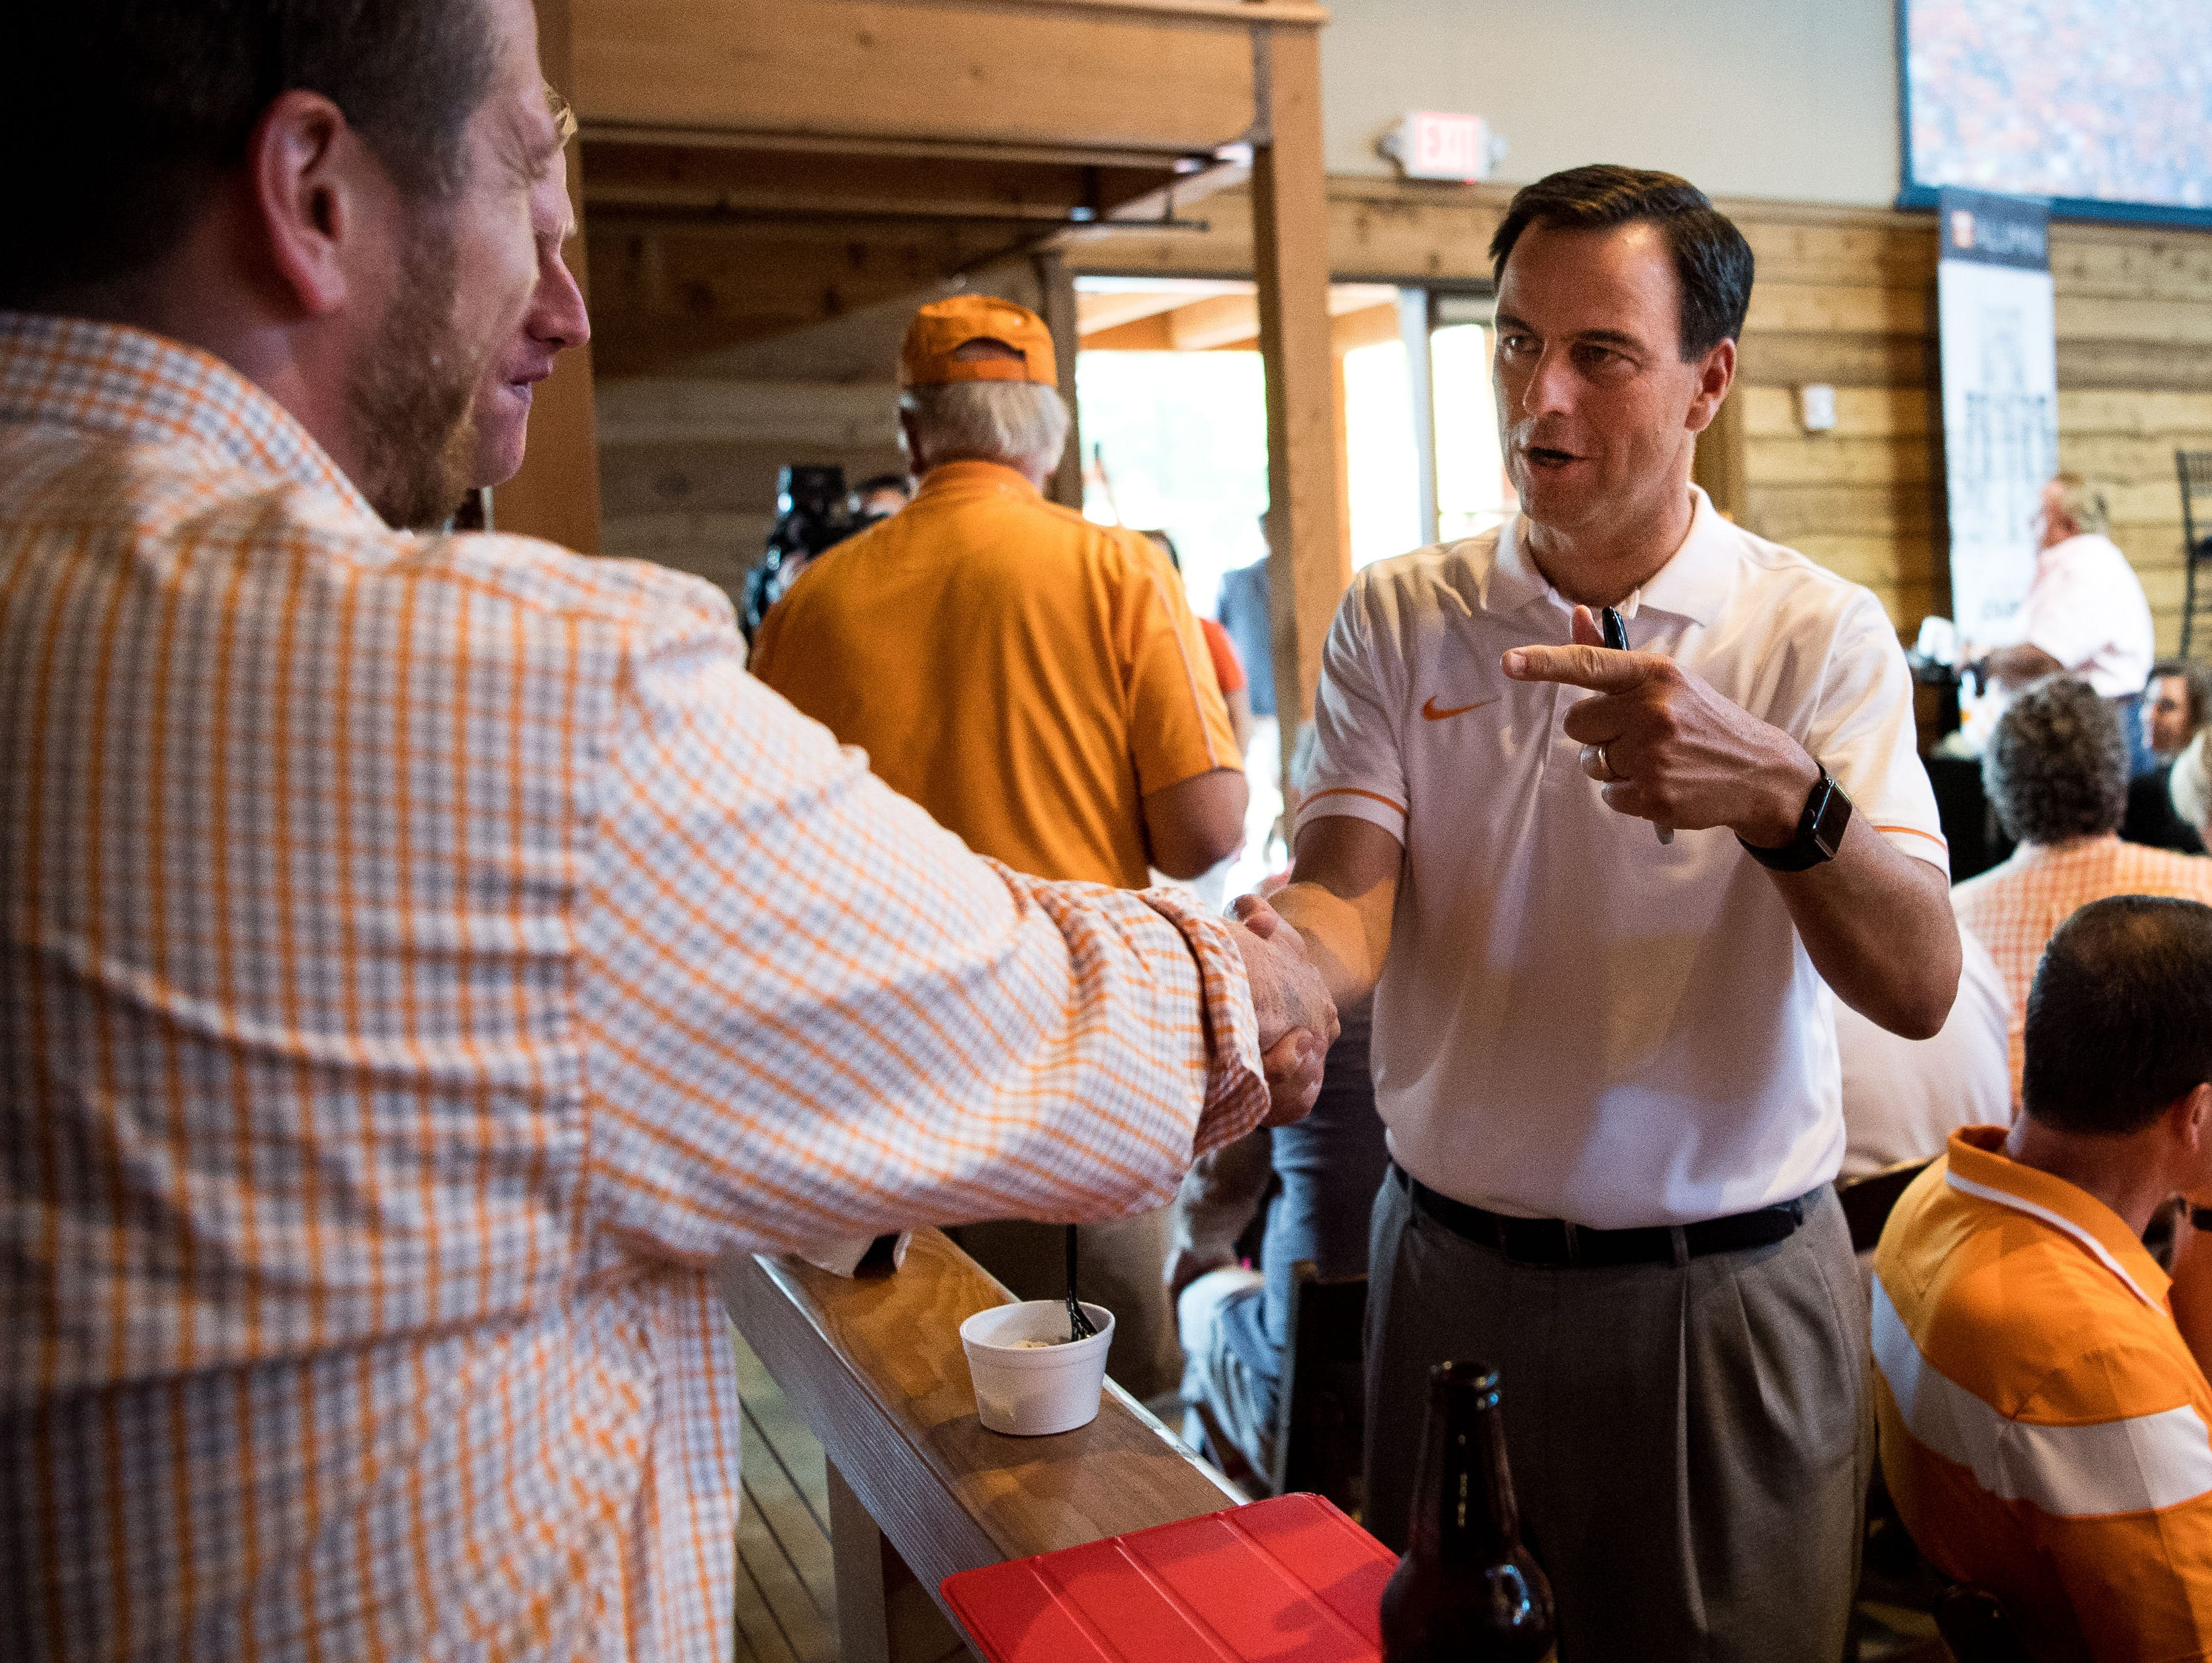 John Currie, University of Tennessee vice chancellor and director of athletics, greets fans during a Big Orange Caravan event at The Barn at Sycamore Farms in Arrington, Tenn., Monday, July 10, 2017.